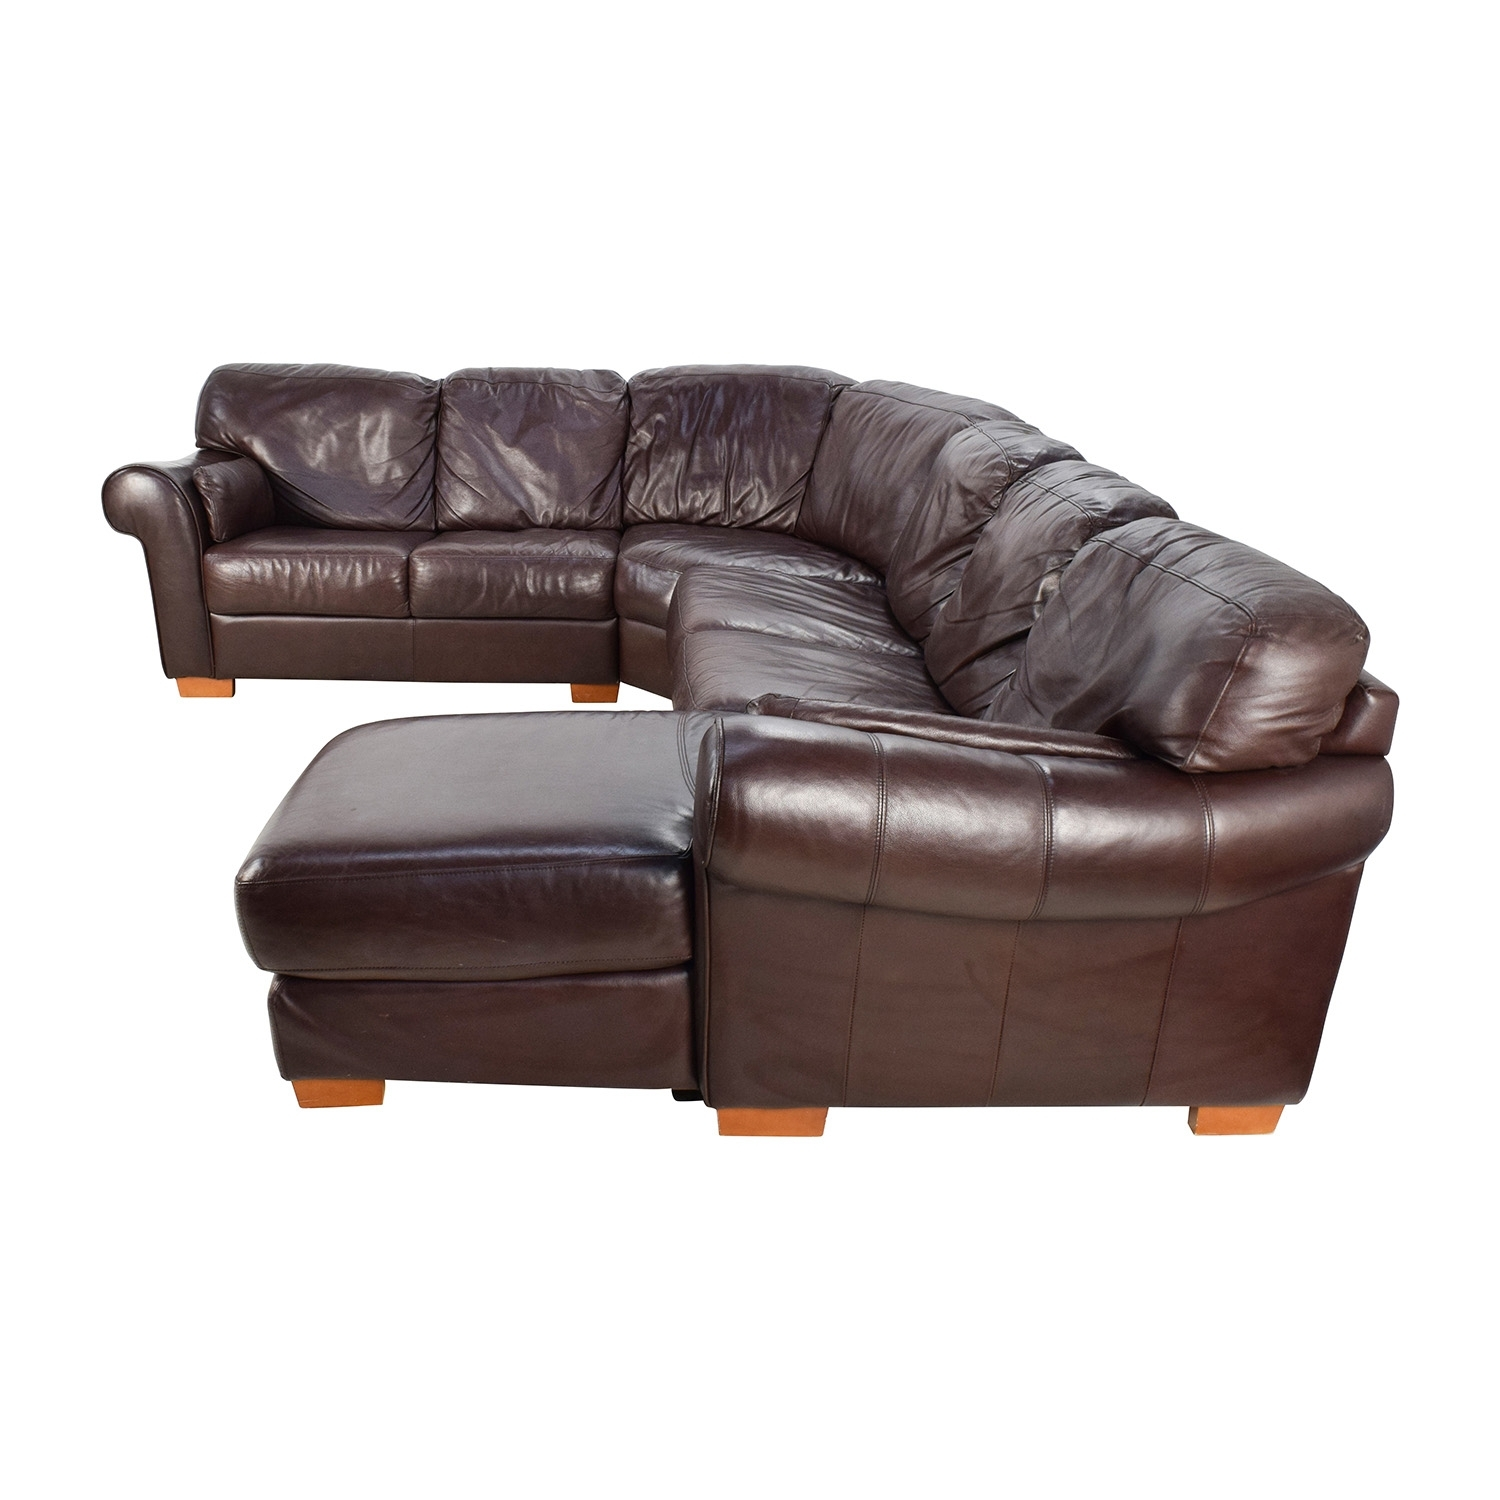 raymour and flanigan sofas 10 best ideas raymour and flanigan sectional sofas sofa 30368